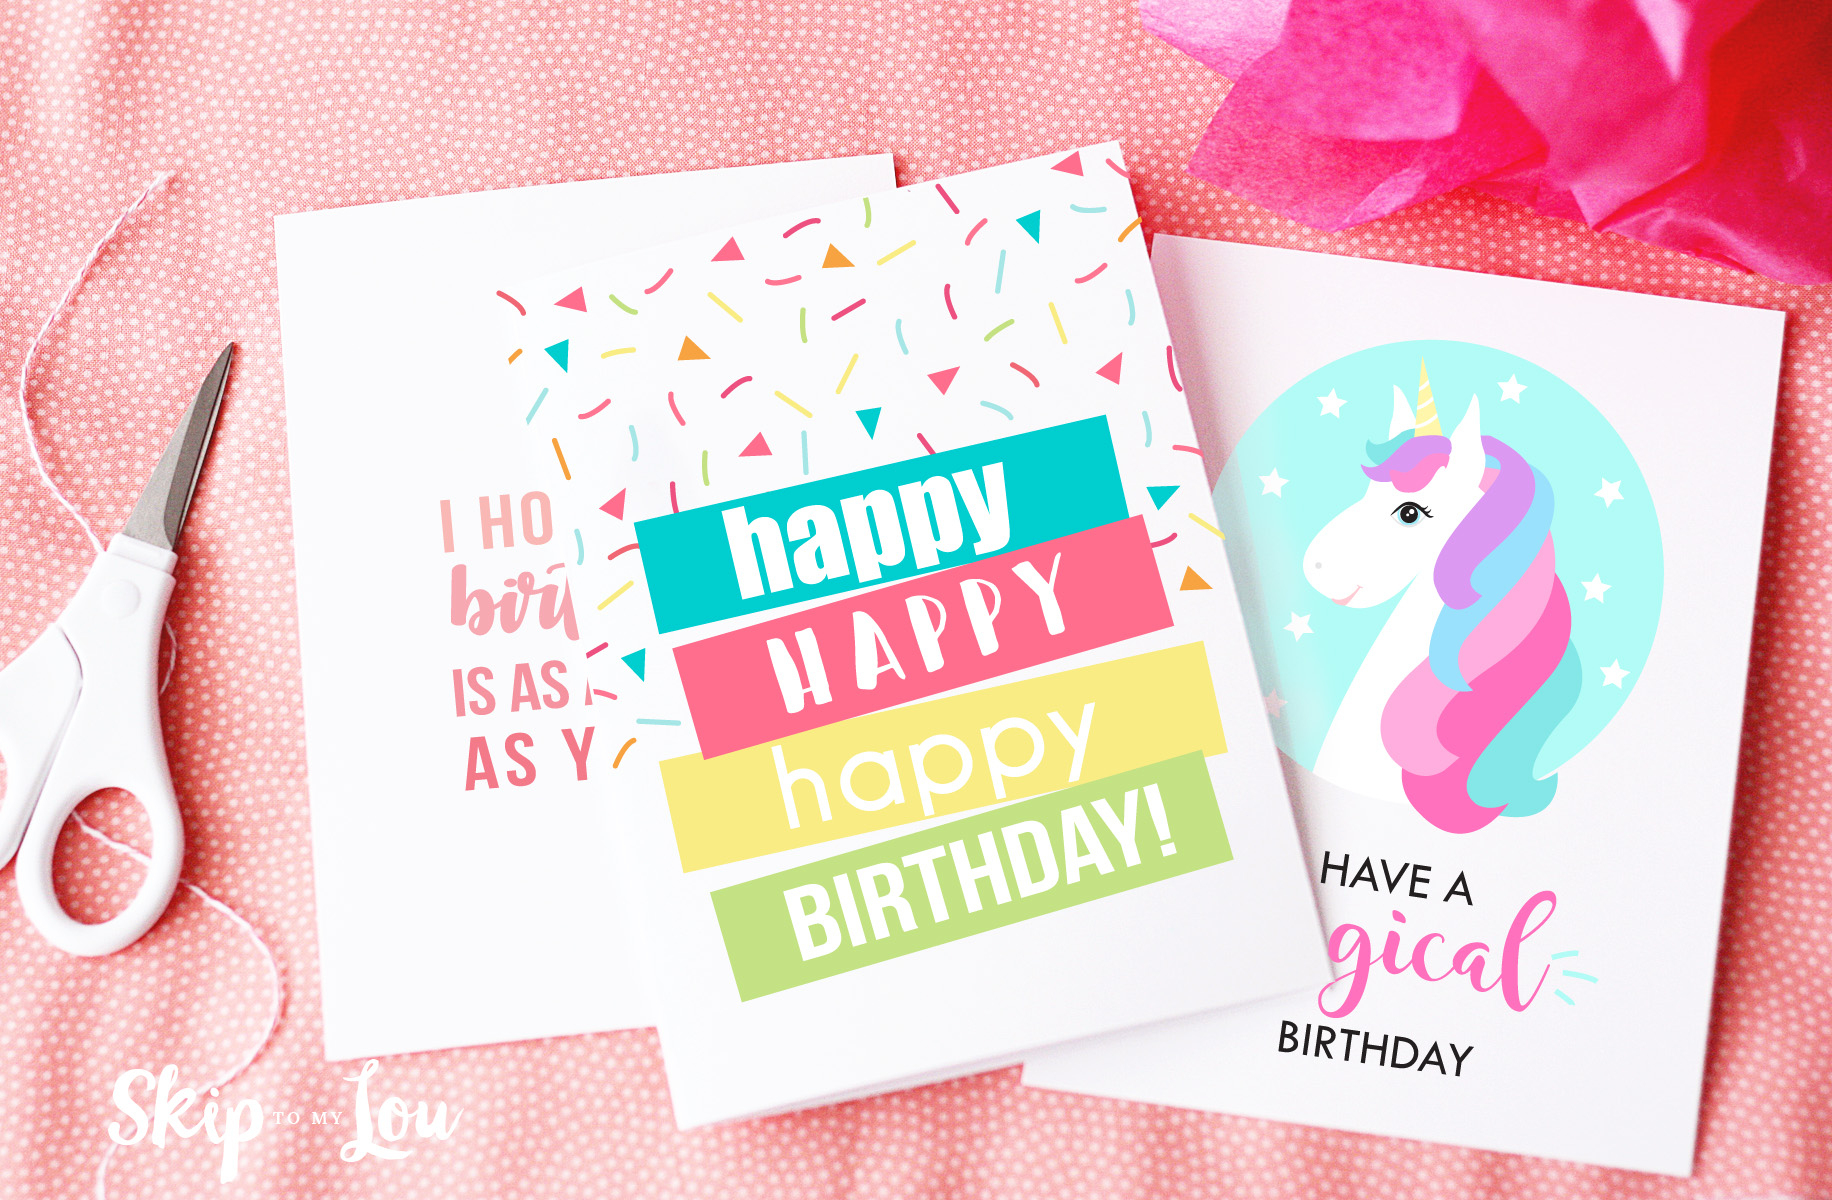 Free Printable Birthday Cards | Skip To My Lou - Free Printable Birthday Cards